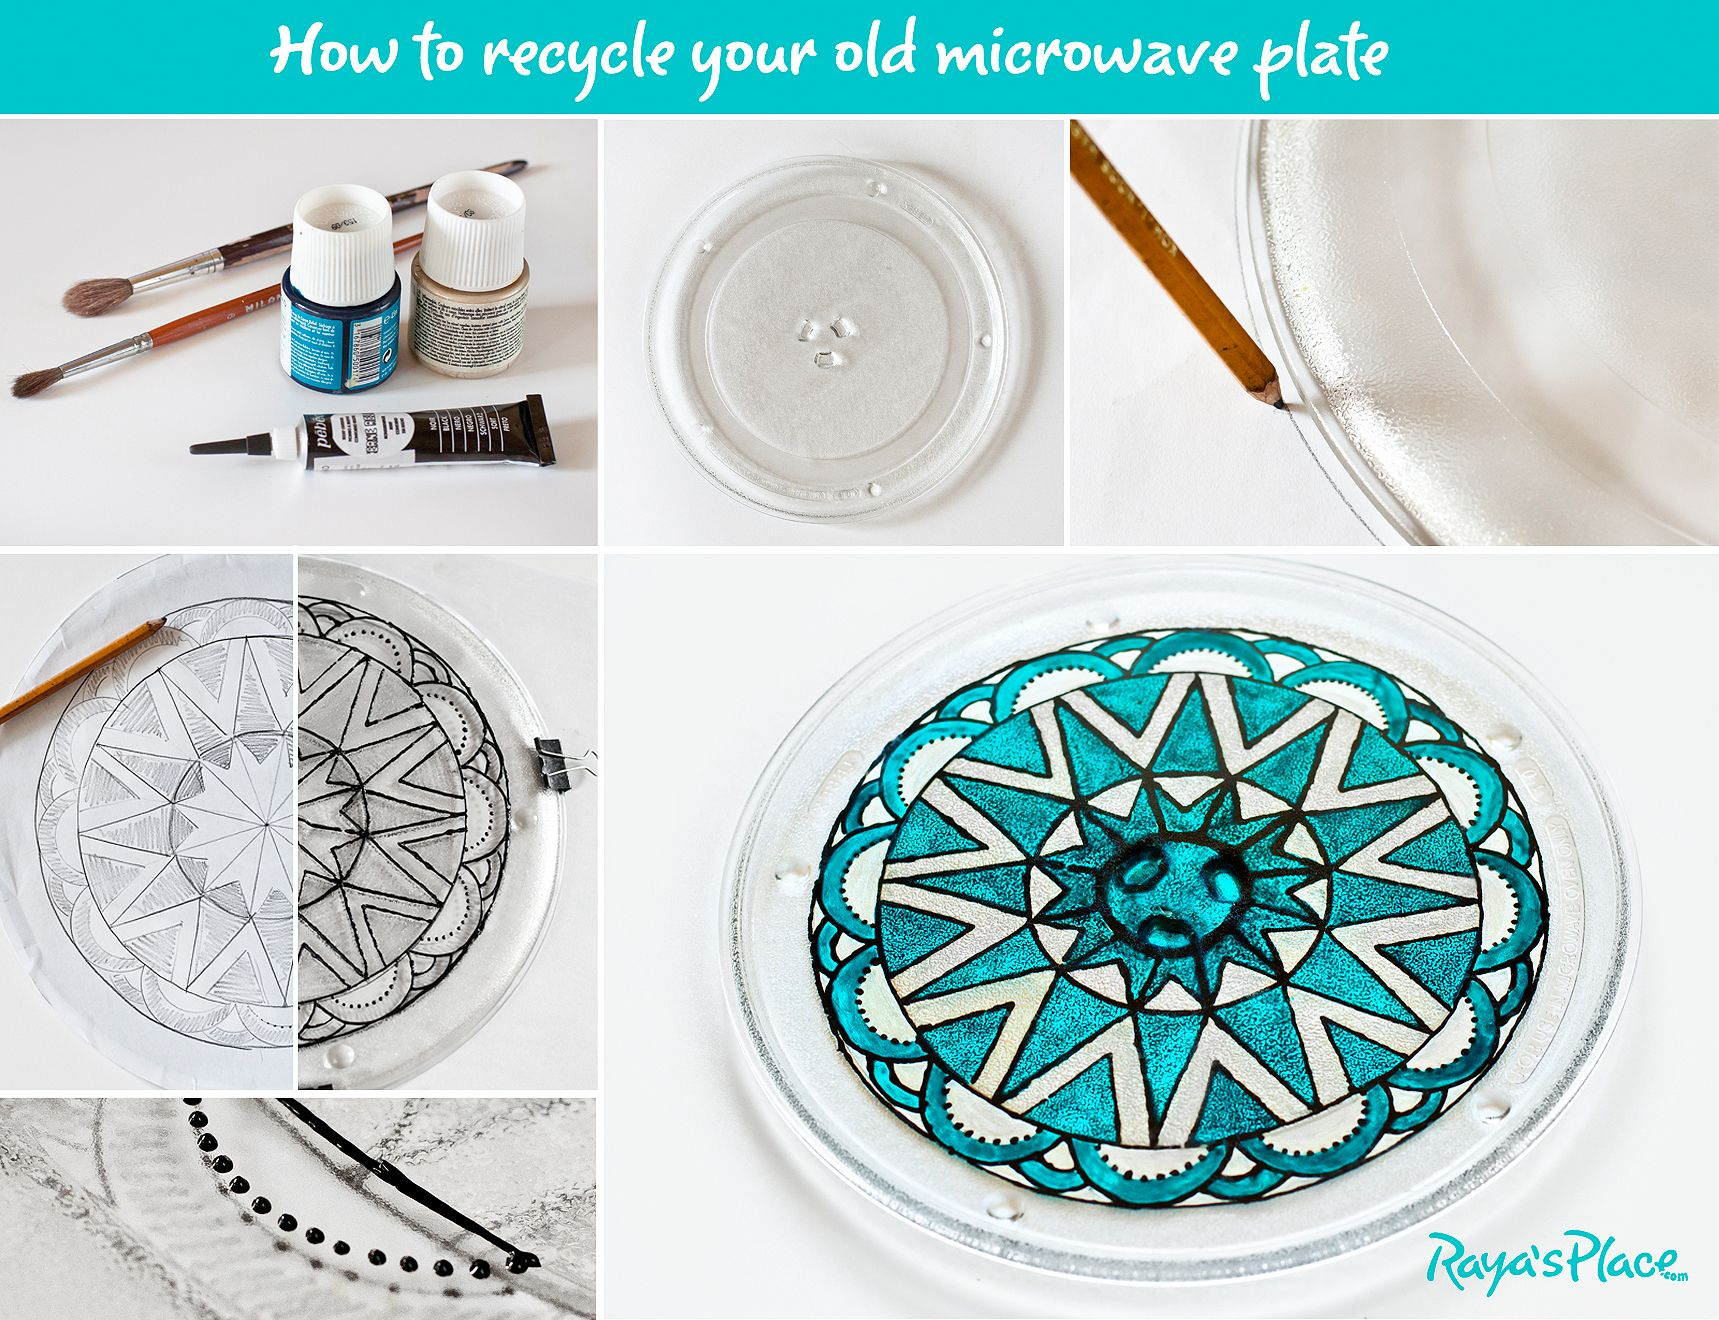 Glass Plate Cover For Microwave Turn The Old Microwave Ovens Glass Plate Into A Beautiful Serving